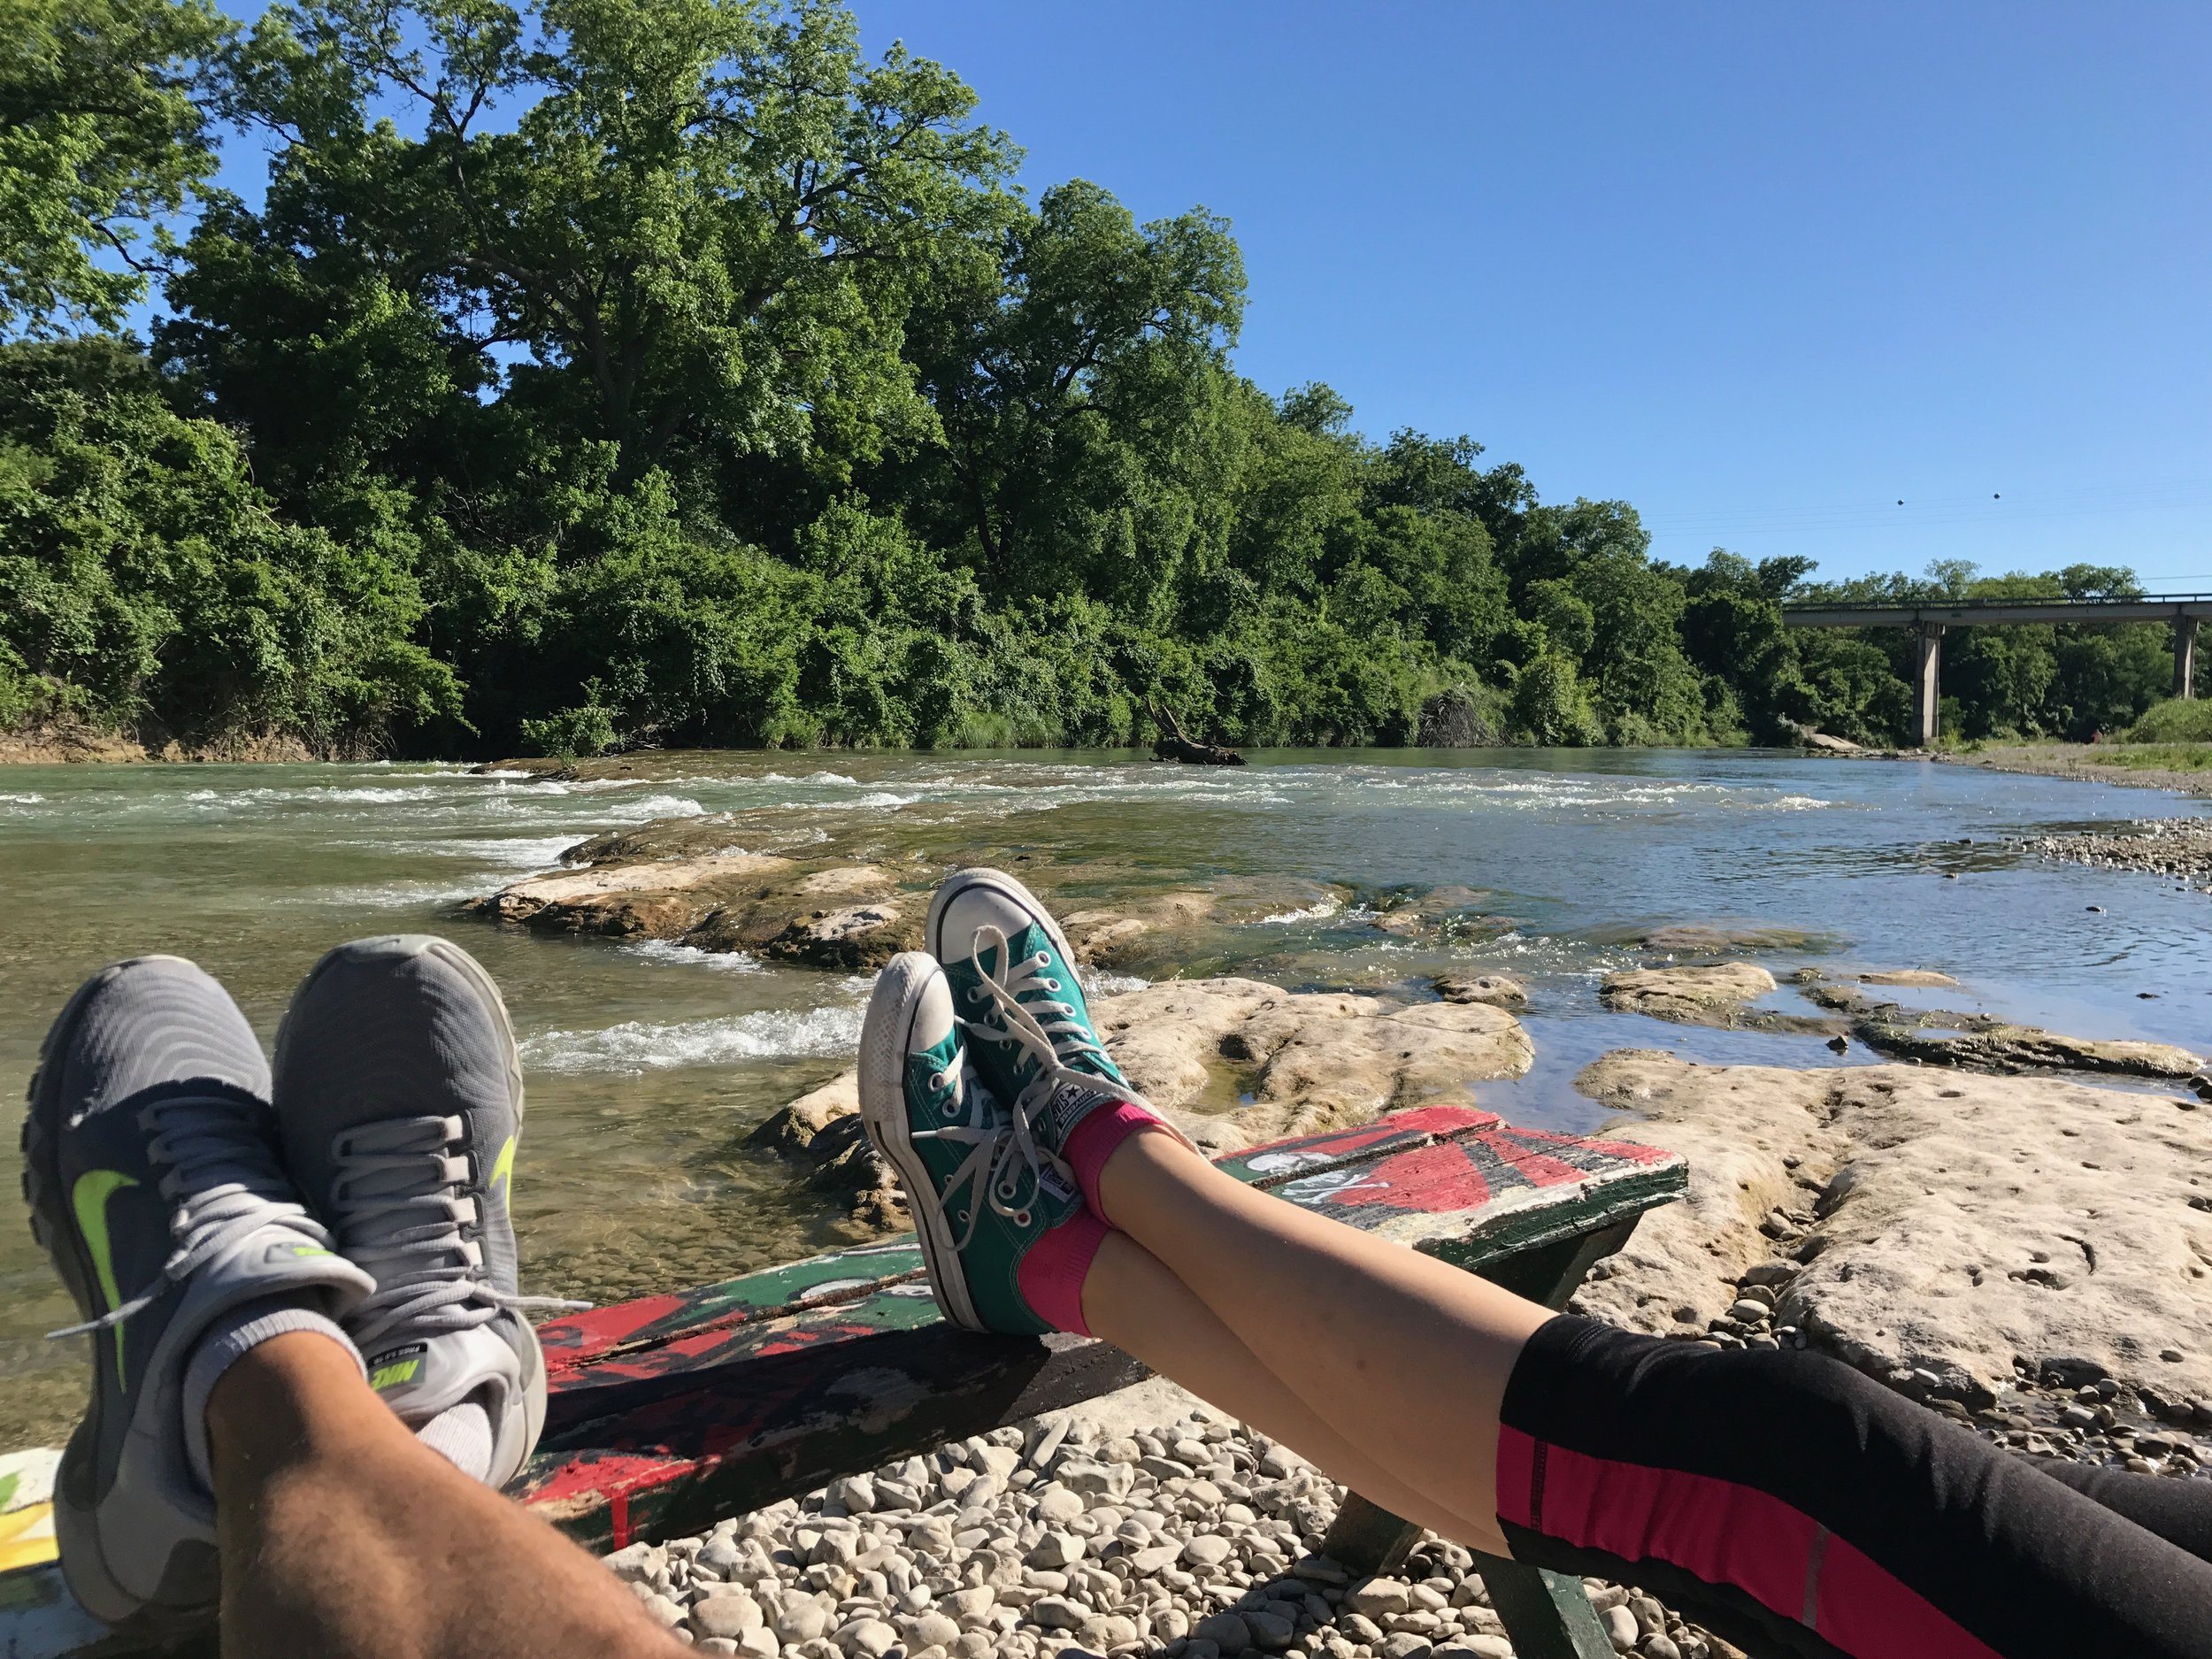 Sitting on the banks of the guadalupe river